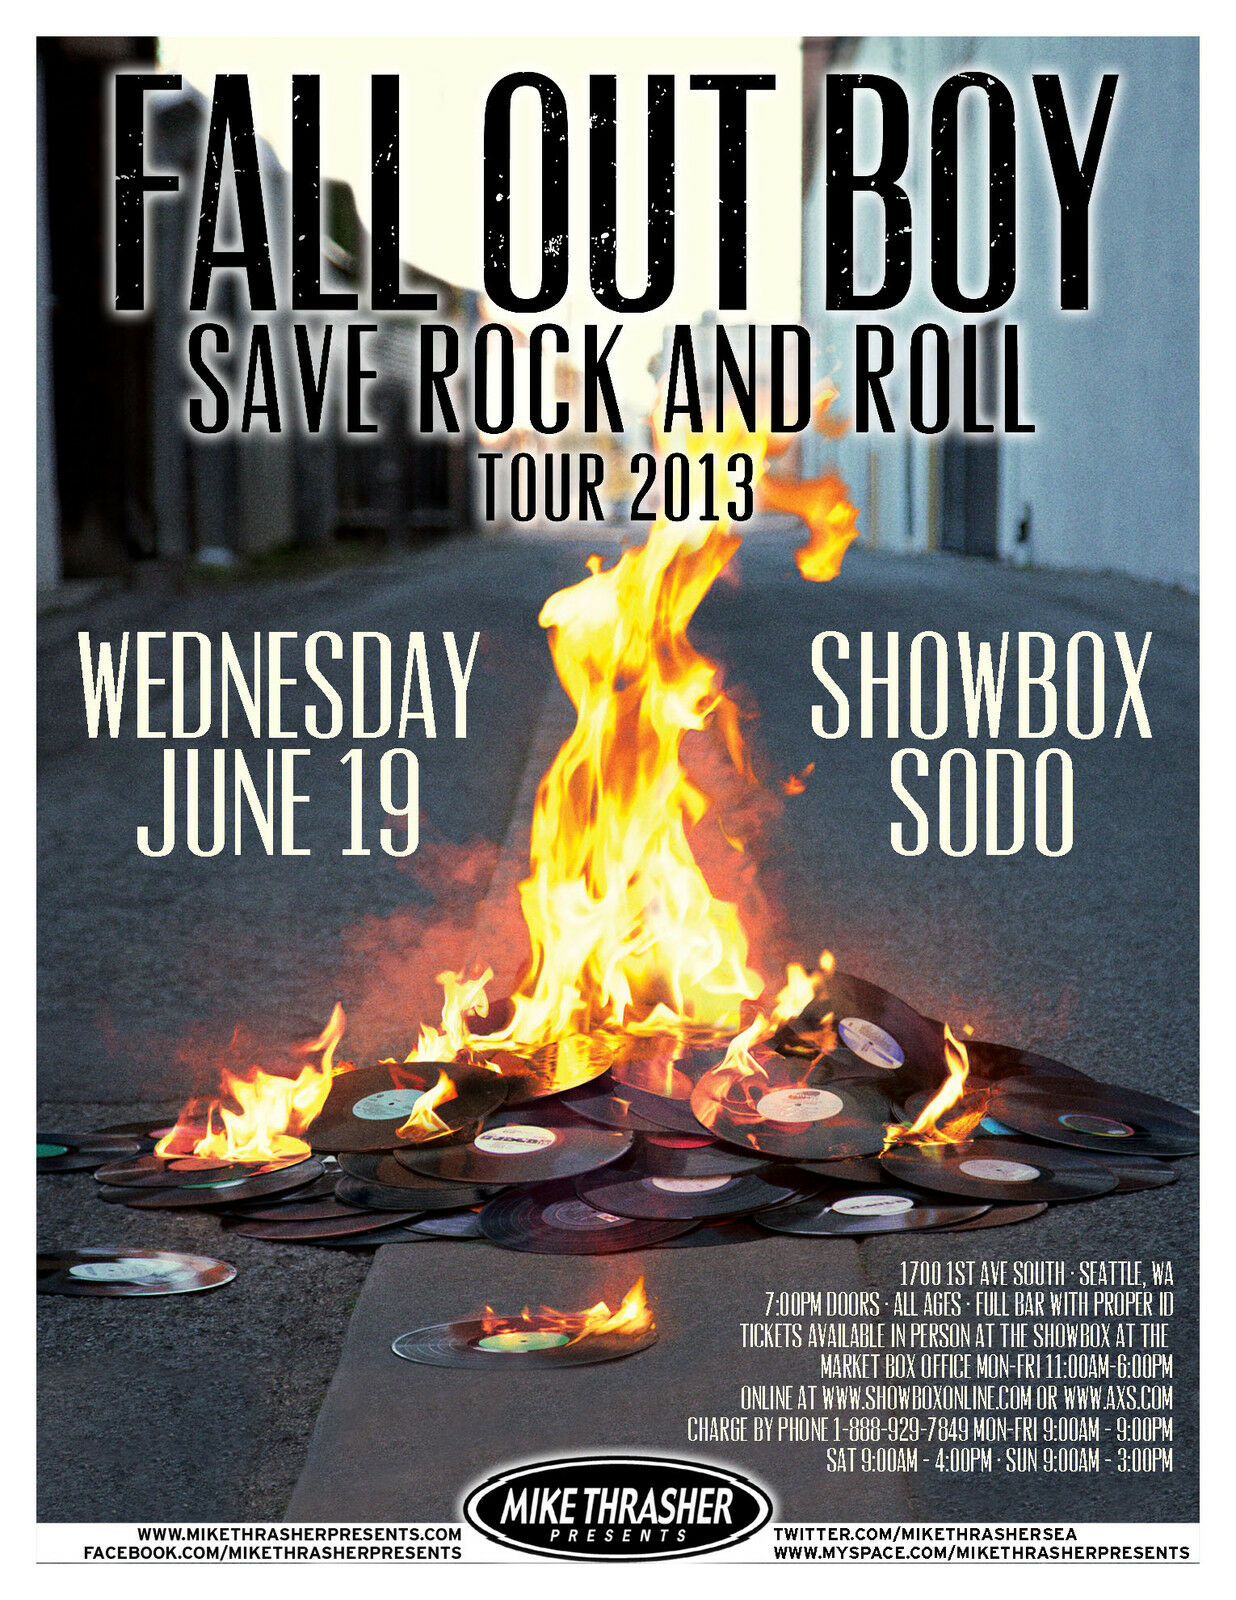 fall out boy save rock and roll tour 2013 seattle concert poster pop punk ebay. Black Bedroom Furniture Sets. Home Design Ideas